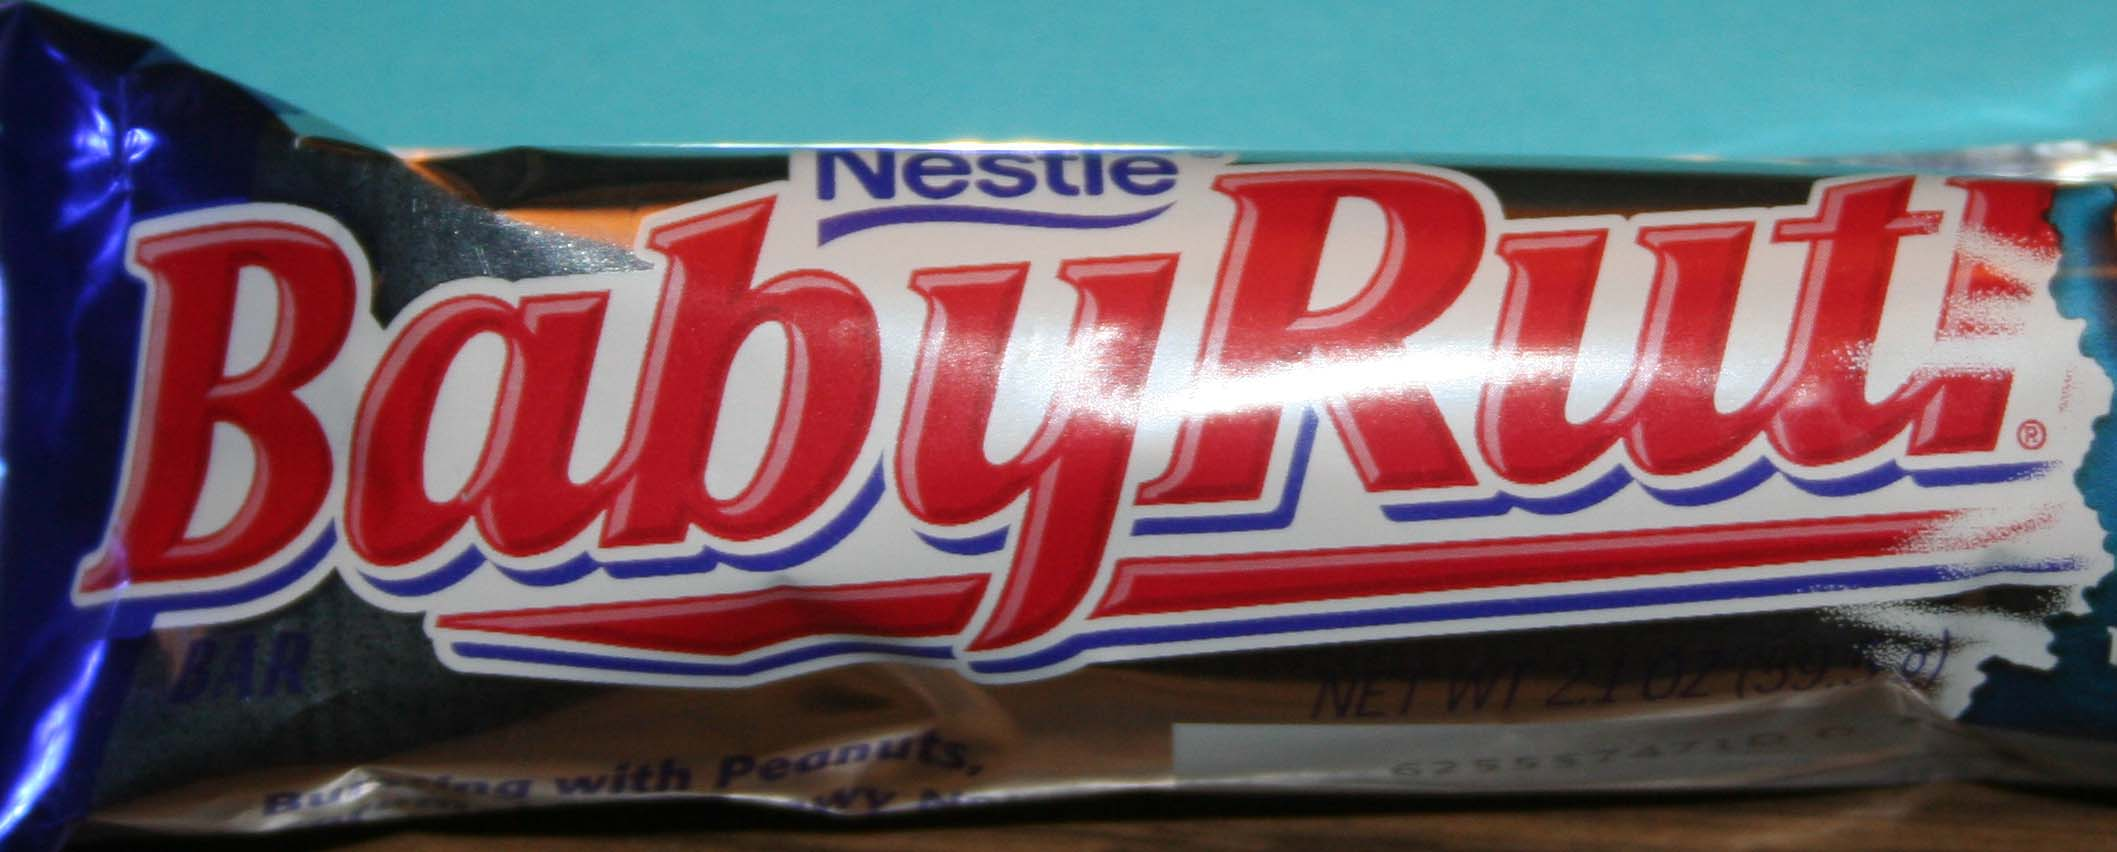 File:Baby Ruth candy bar.jpg - Wikimedia Commons